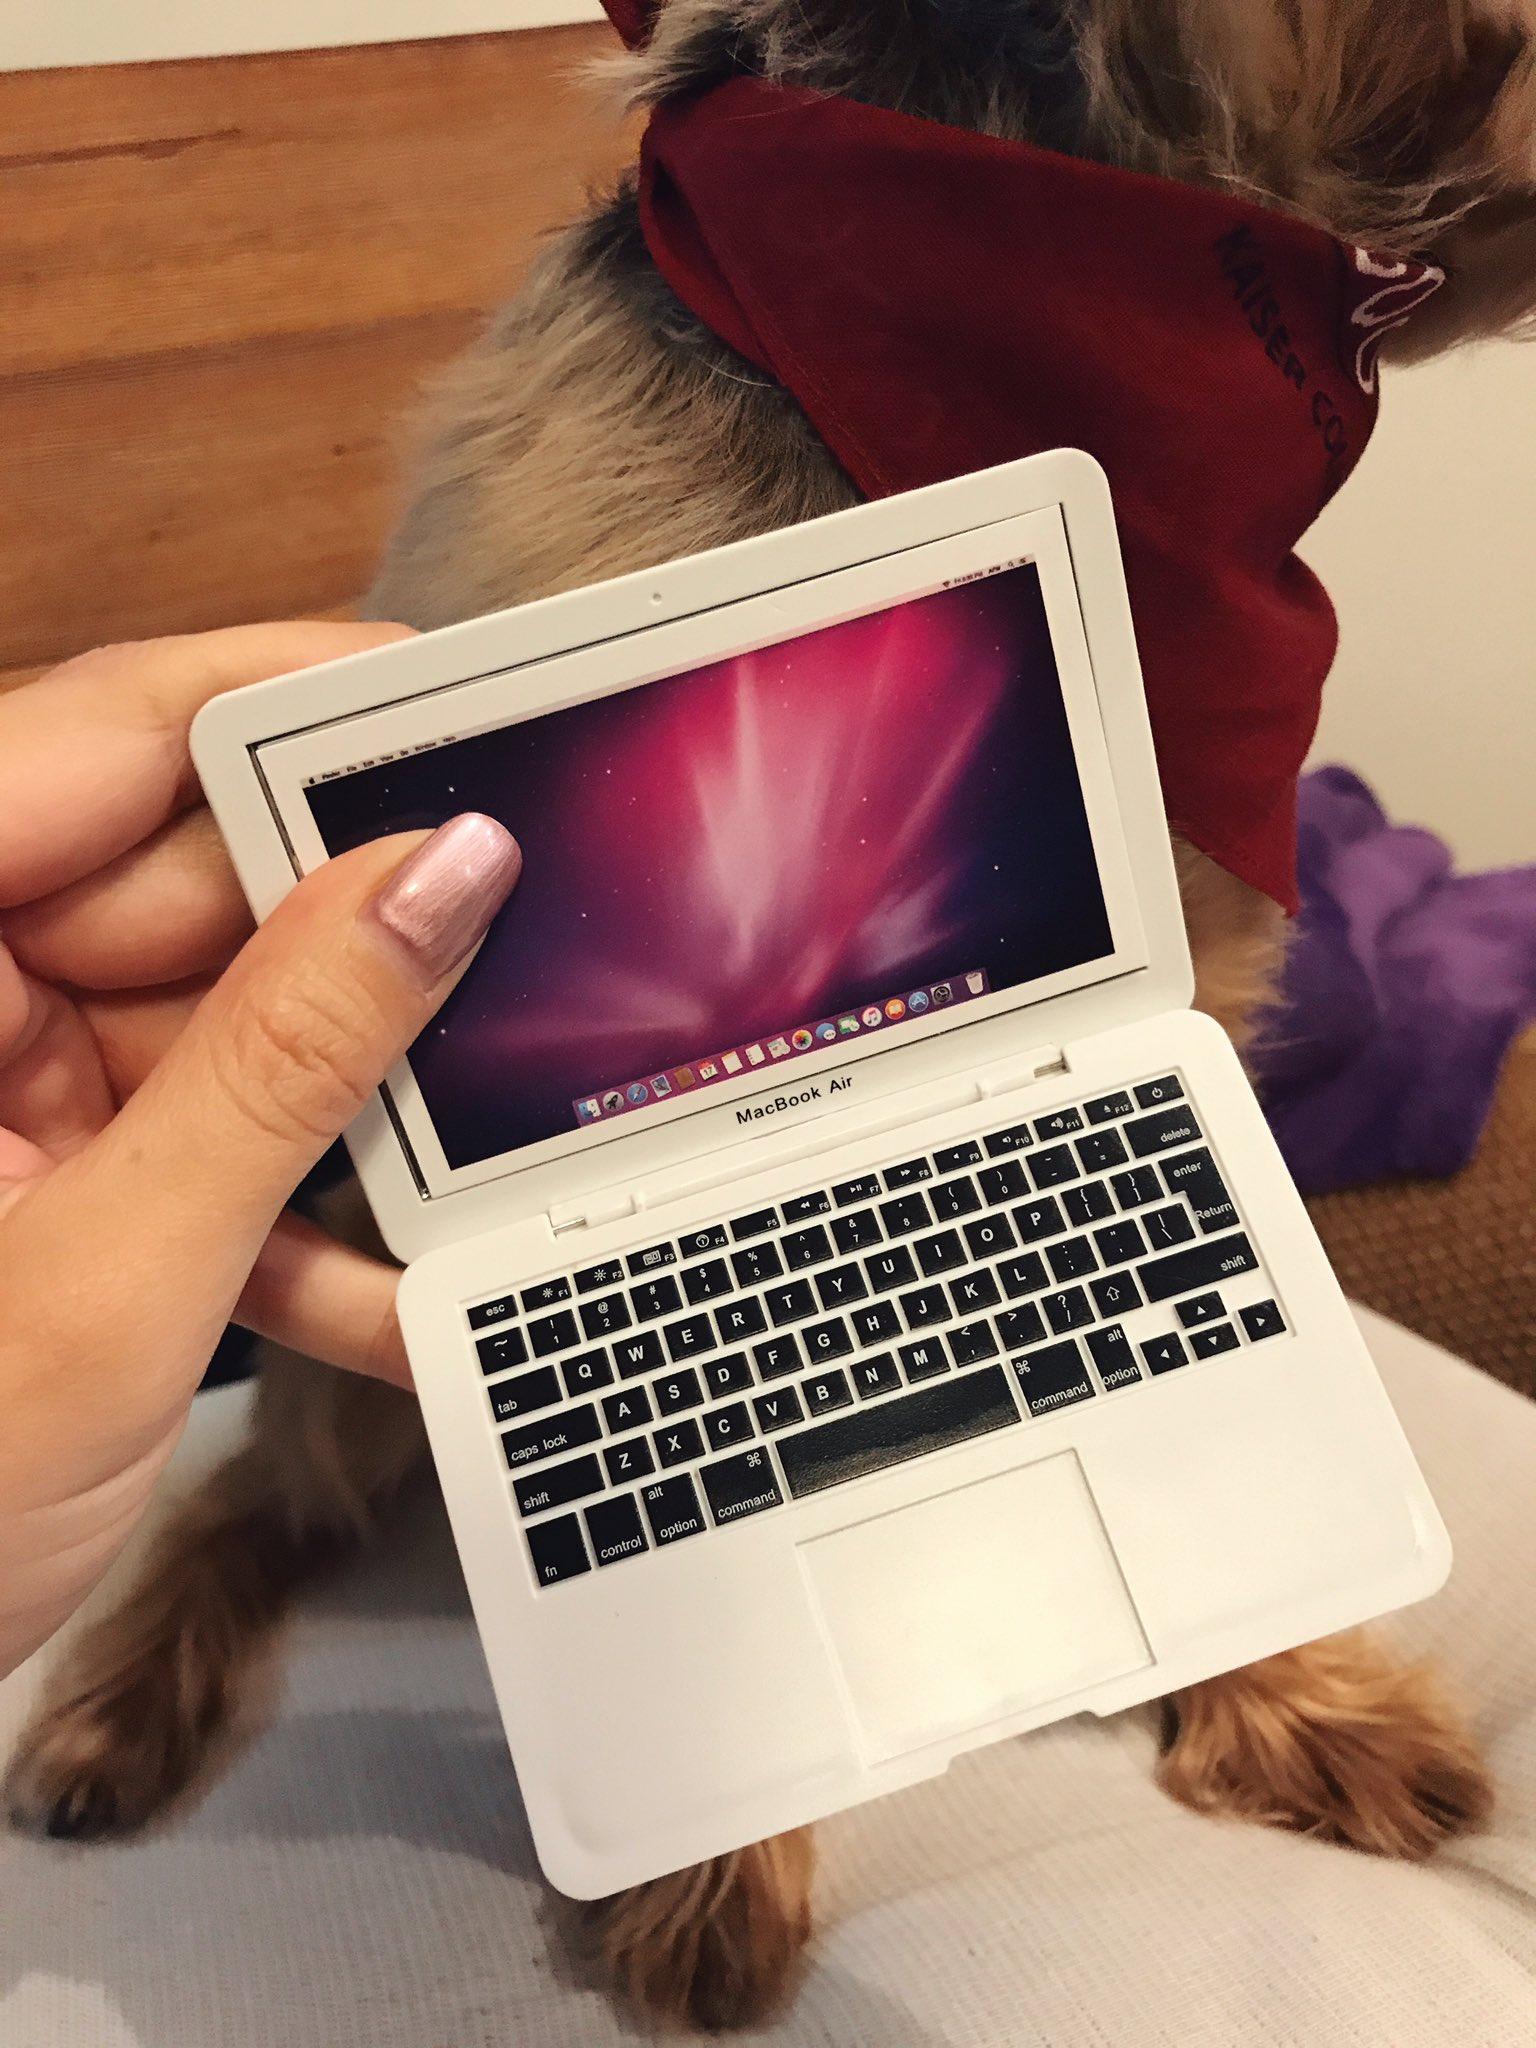 I bought a mini toy laptop for my dog. So he can at least look like he's helping support this family. https://t.co/WbWcZKQD4A